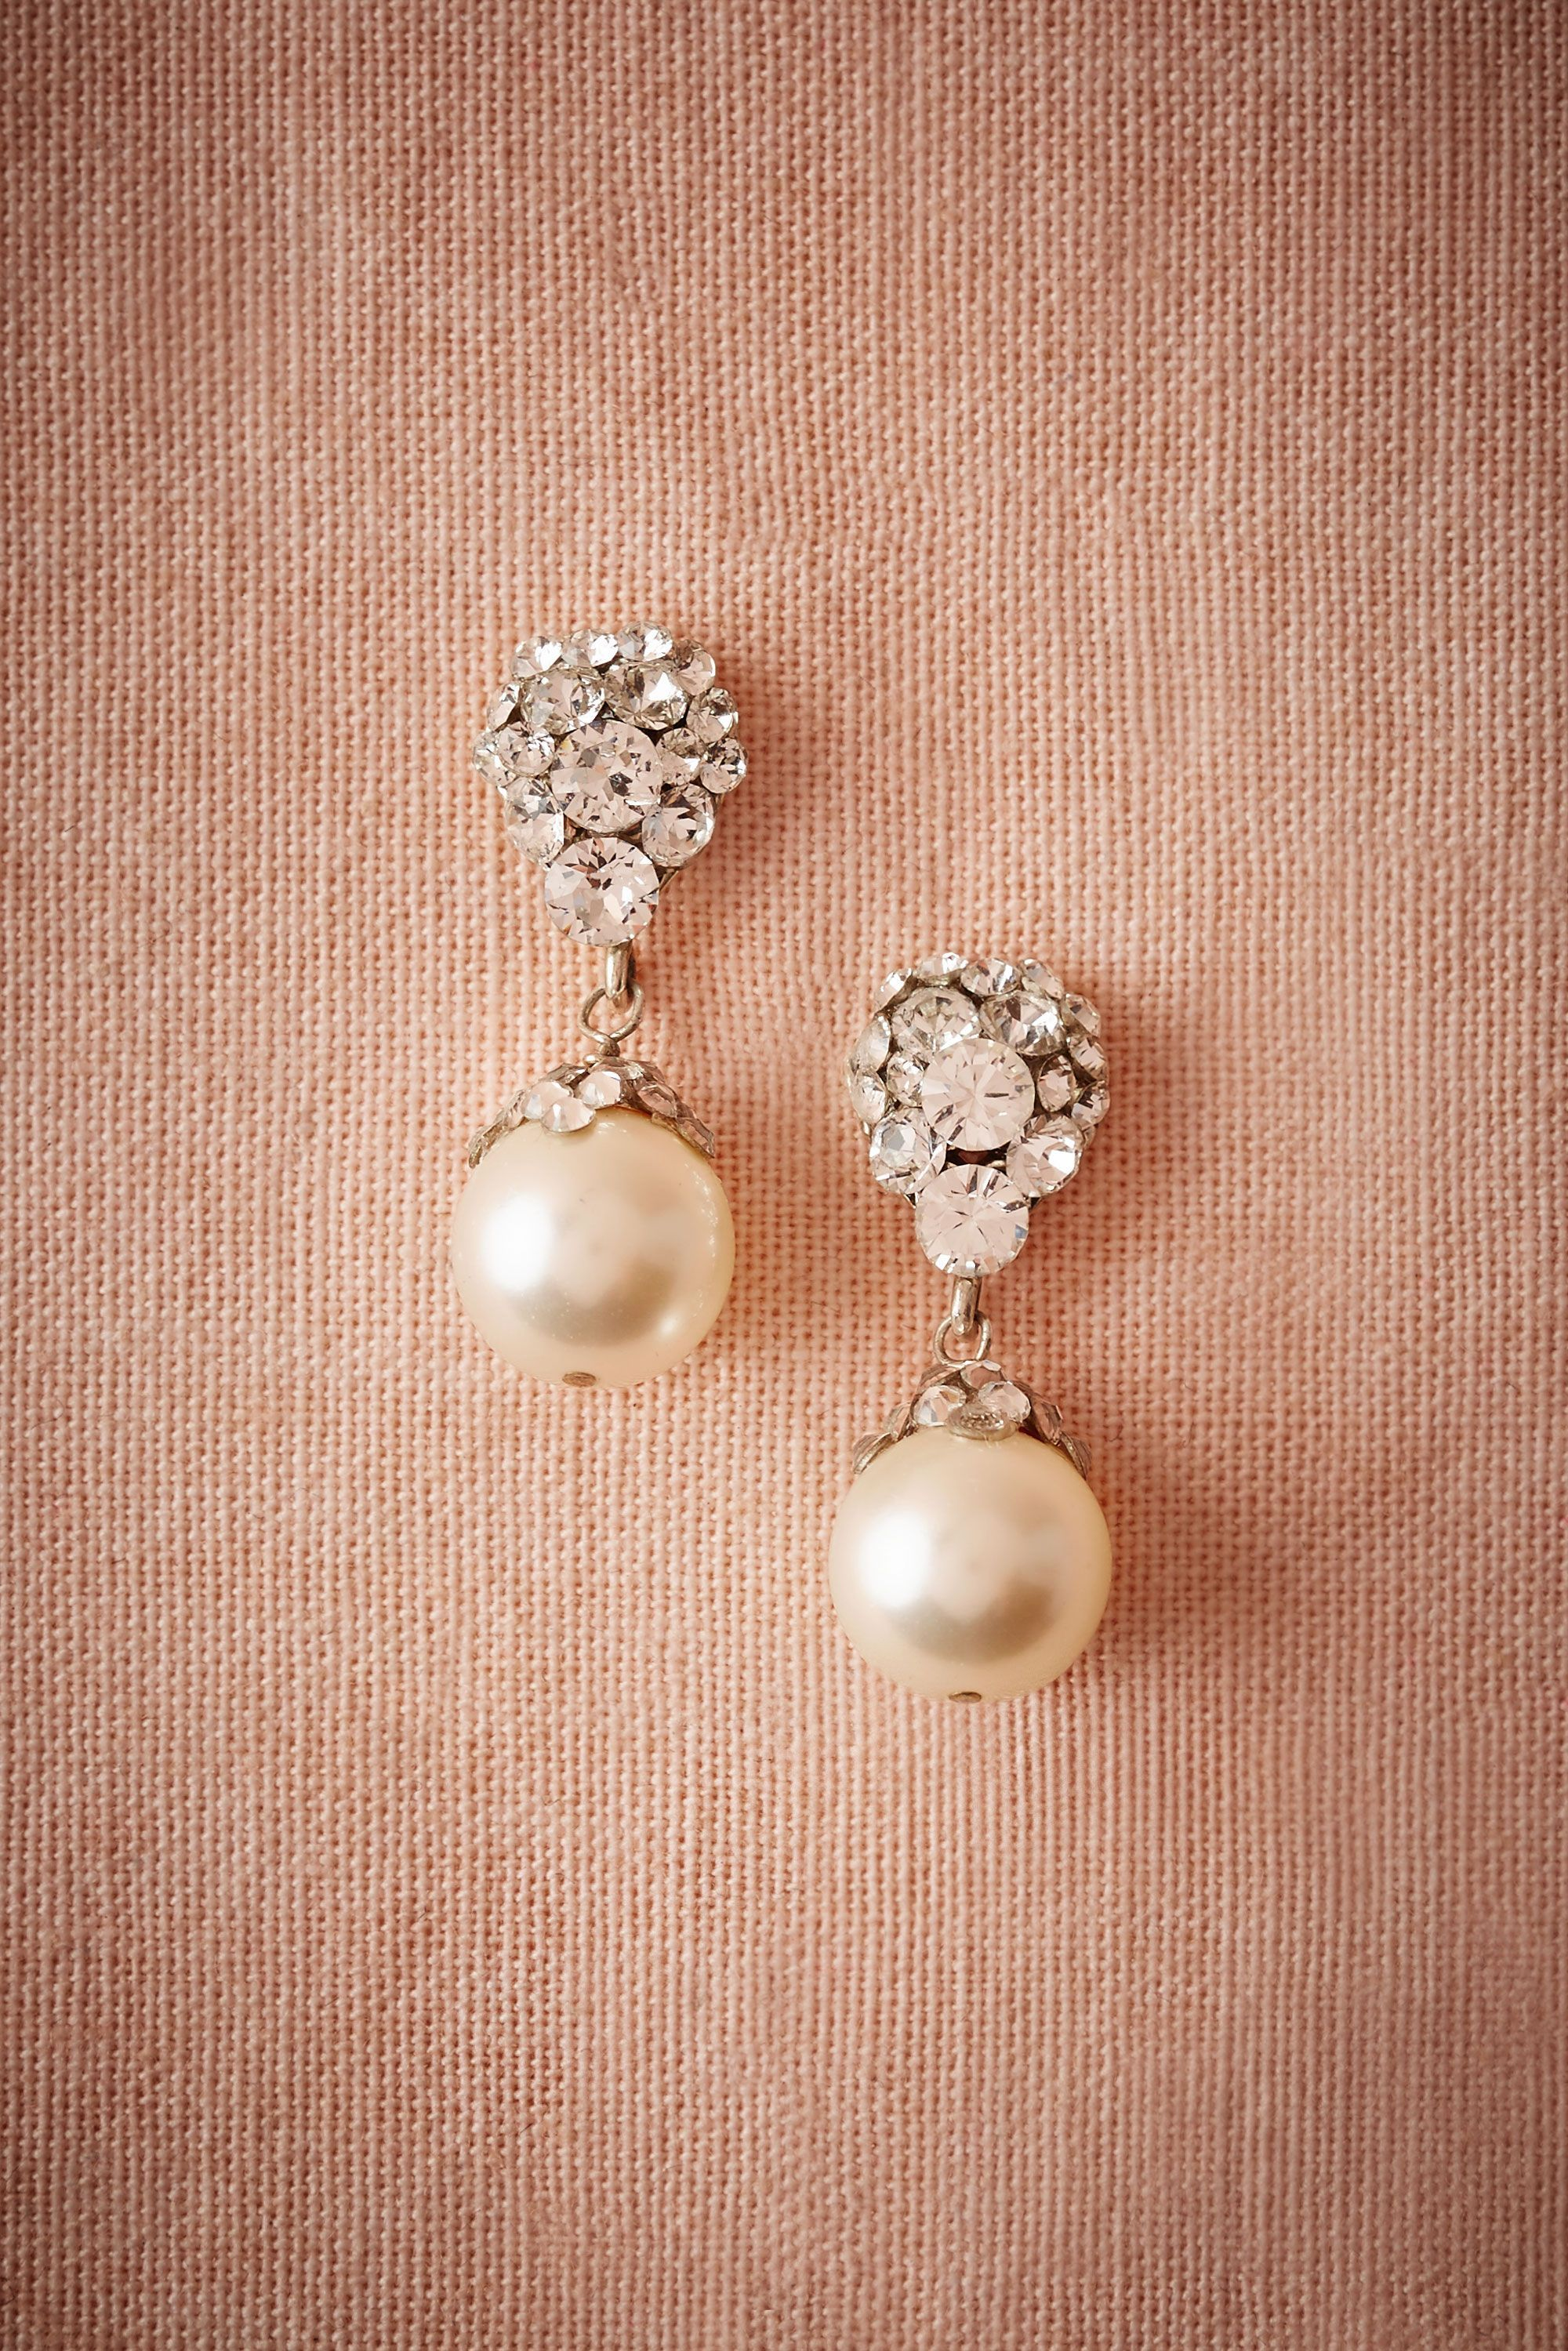 shaker us and icing pearl back white faux amp bead front stud earrings